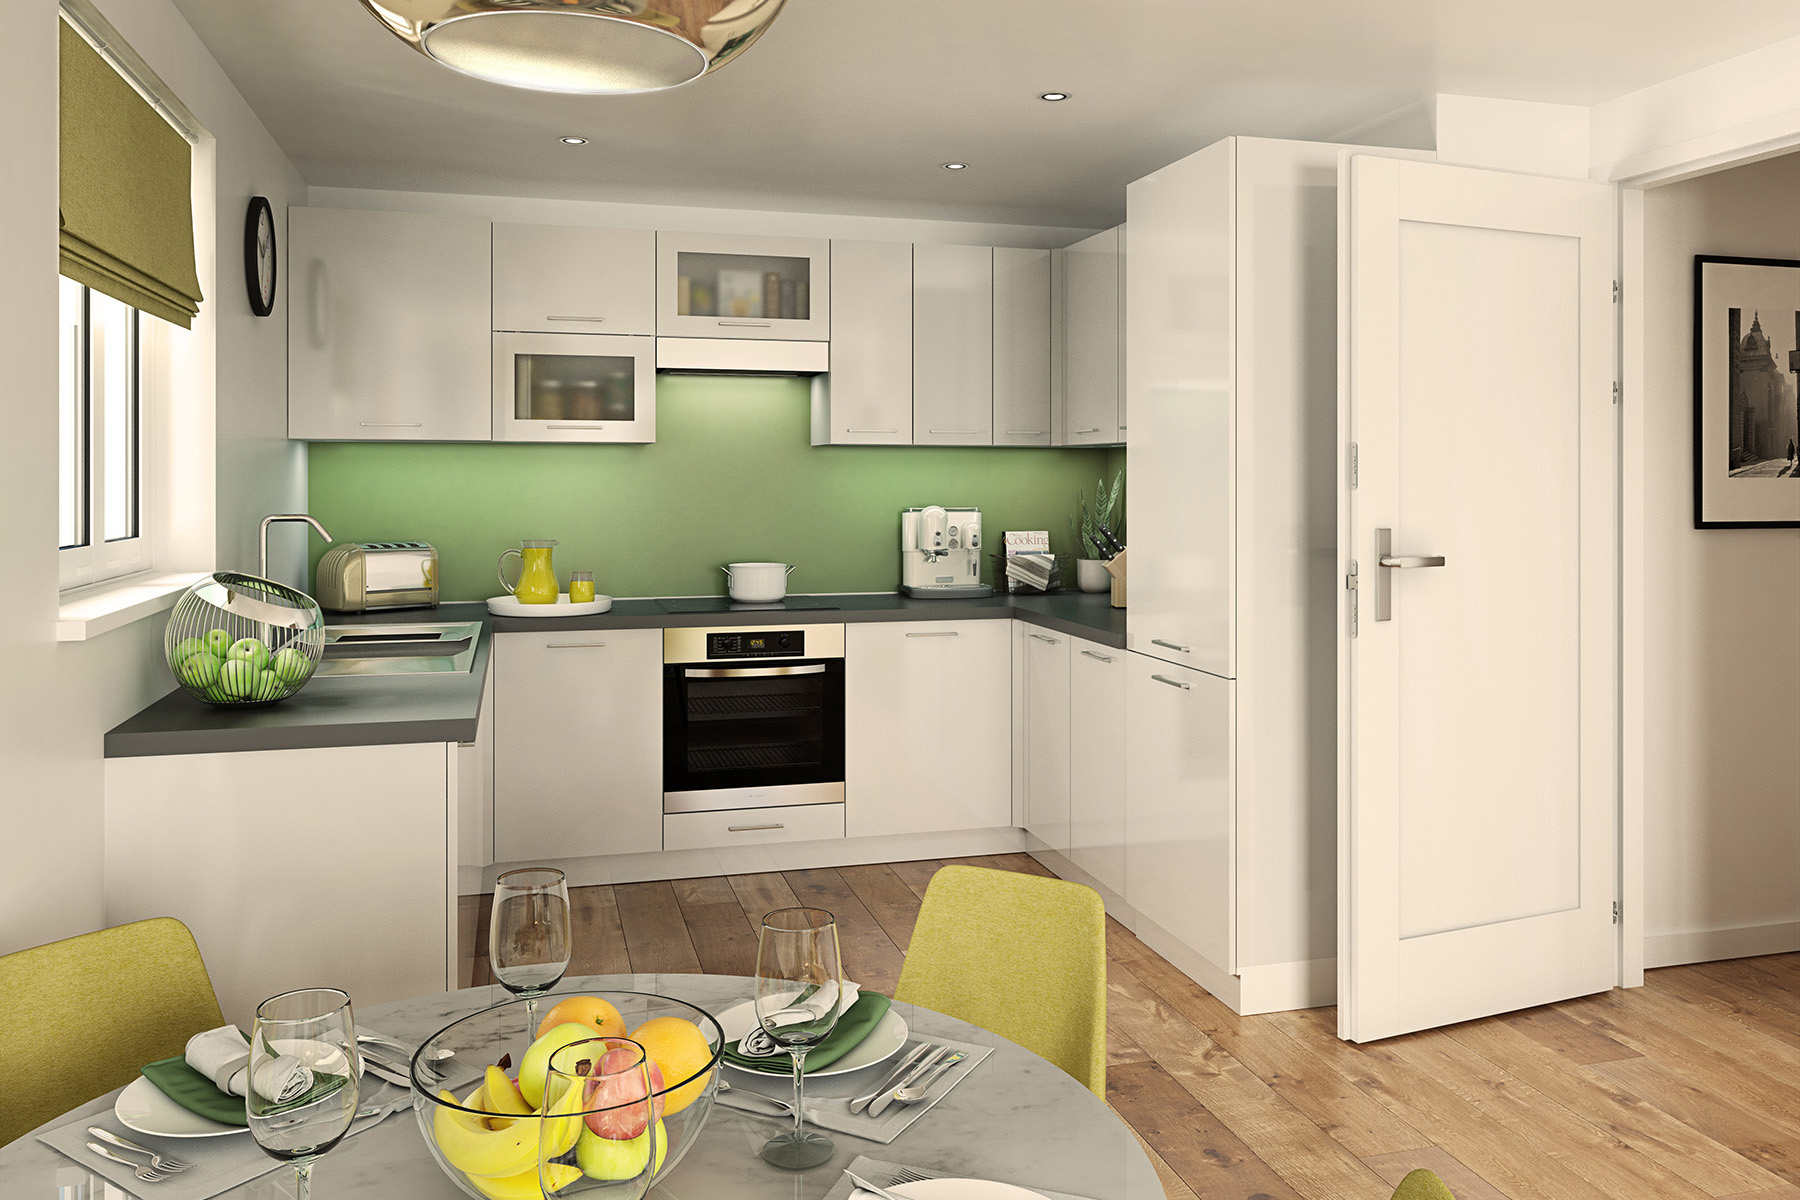 TW South Midlands_Shakespeare Park_Apartment B1_Kitchen